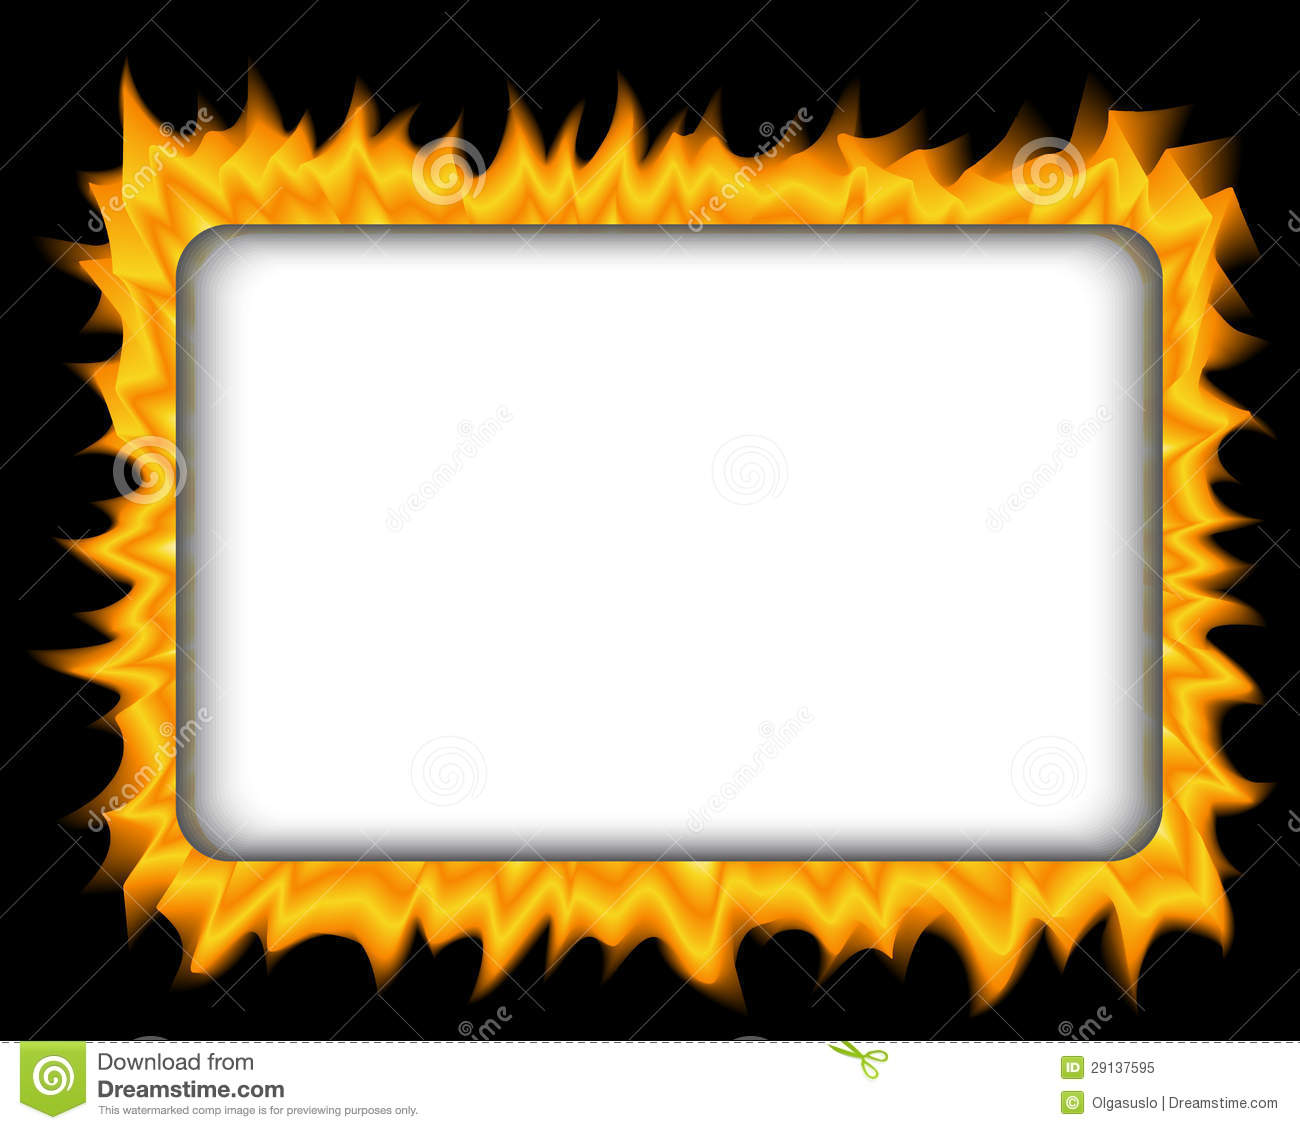 fire burning clip art